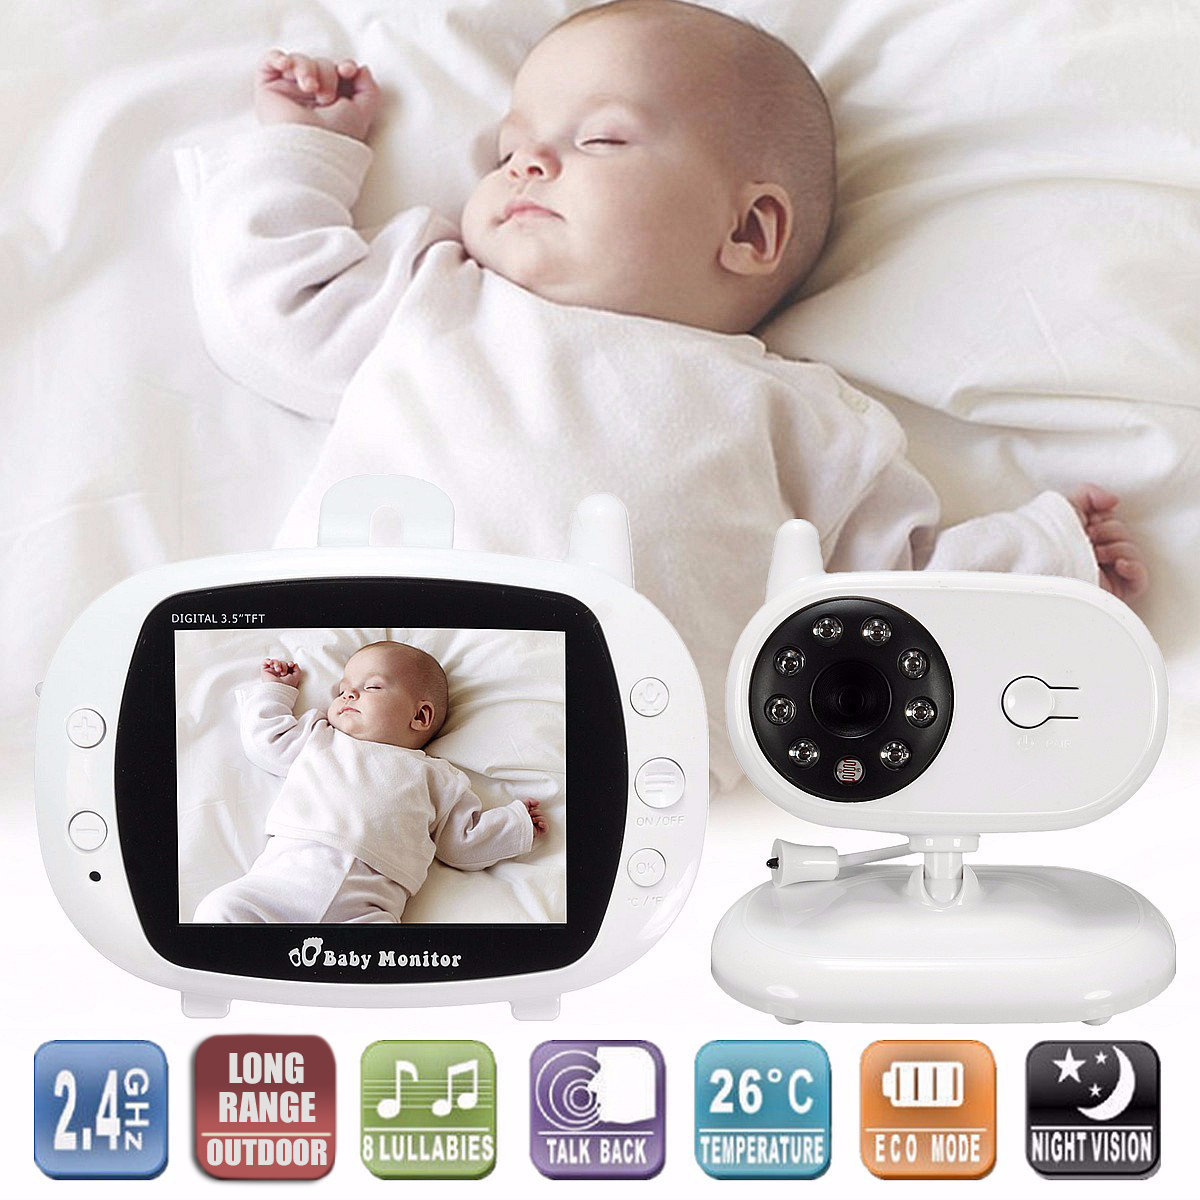 2.4G Wireless Digital 3.5 Inch LCD Baby Monitor High Resolution Baby Nanny Security Camera Night Vision Temperature Detection